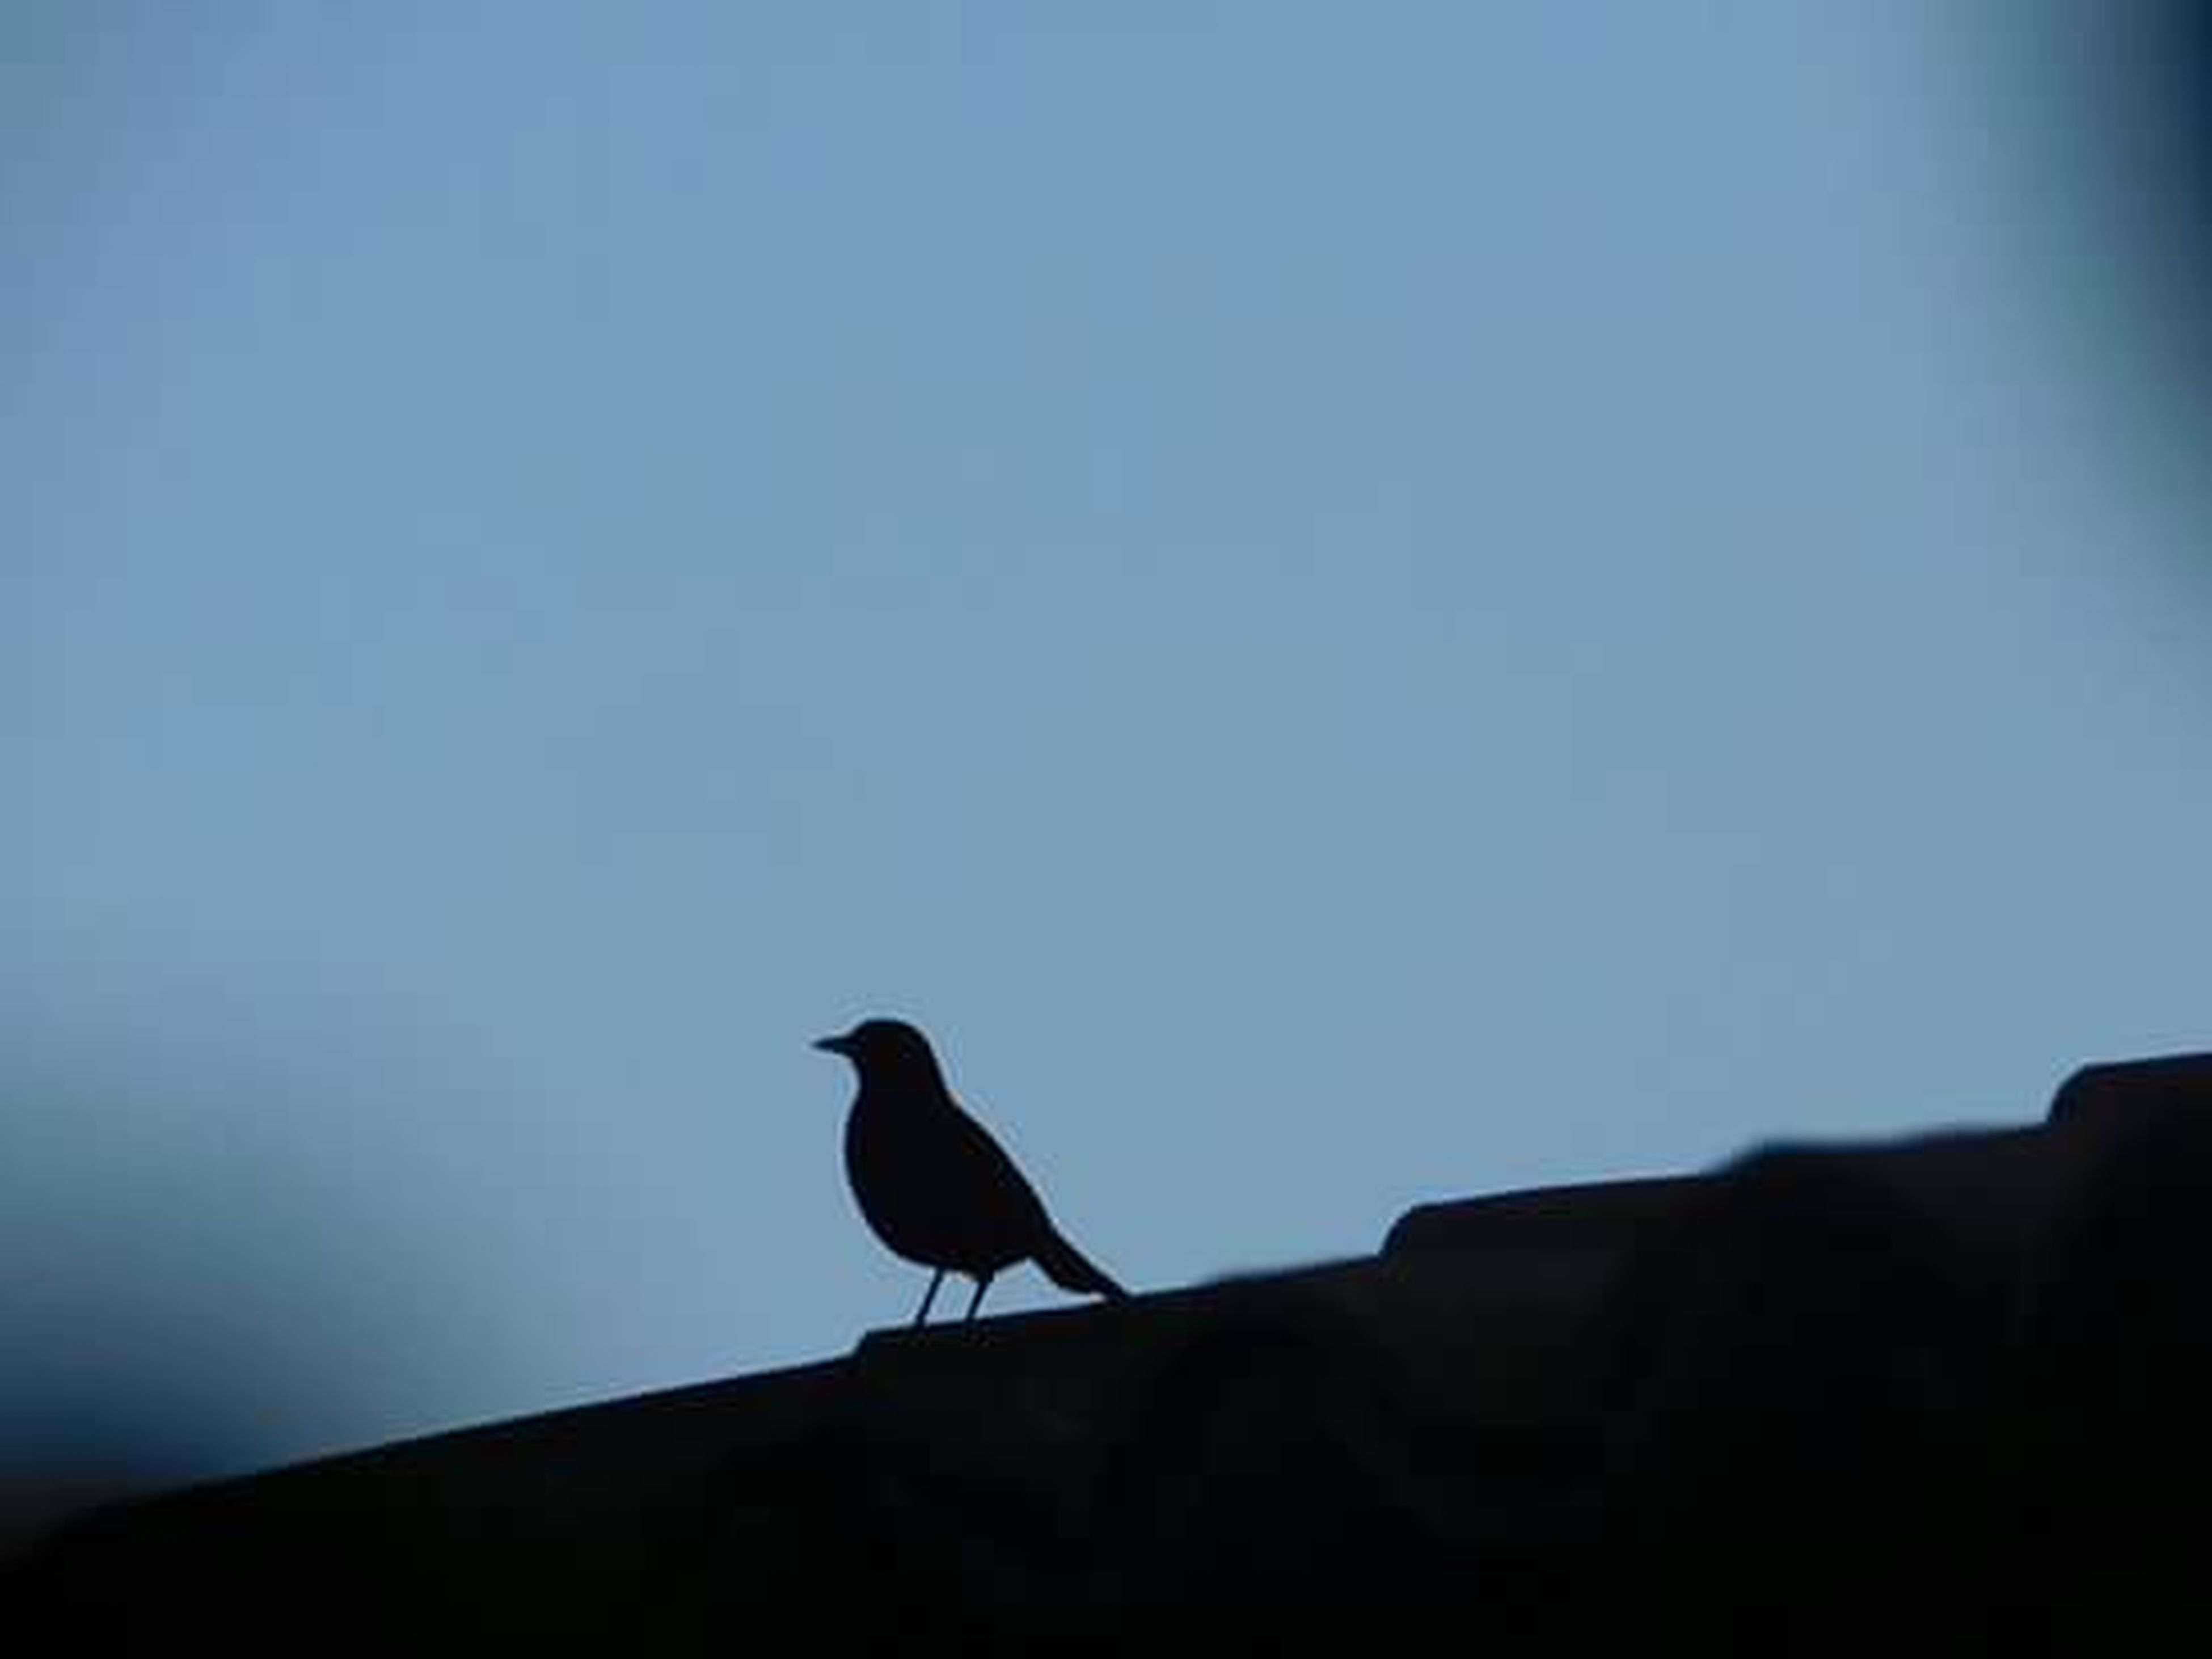 bird, animal themes, animals in the wild, wildlife, one animal, perching, clear sky, silhouette, copy space, low angle view, nature, full length, pigeon, zoology, outdoors, no people, flying, dusk, sky, two animals